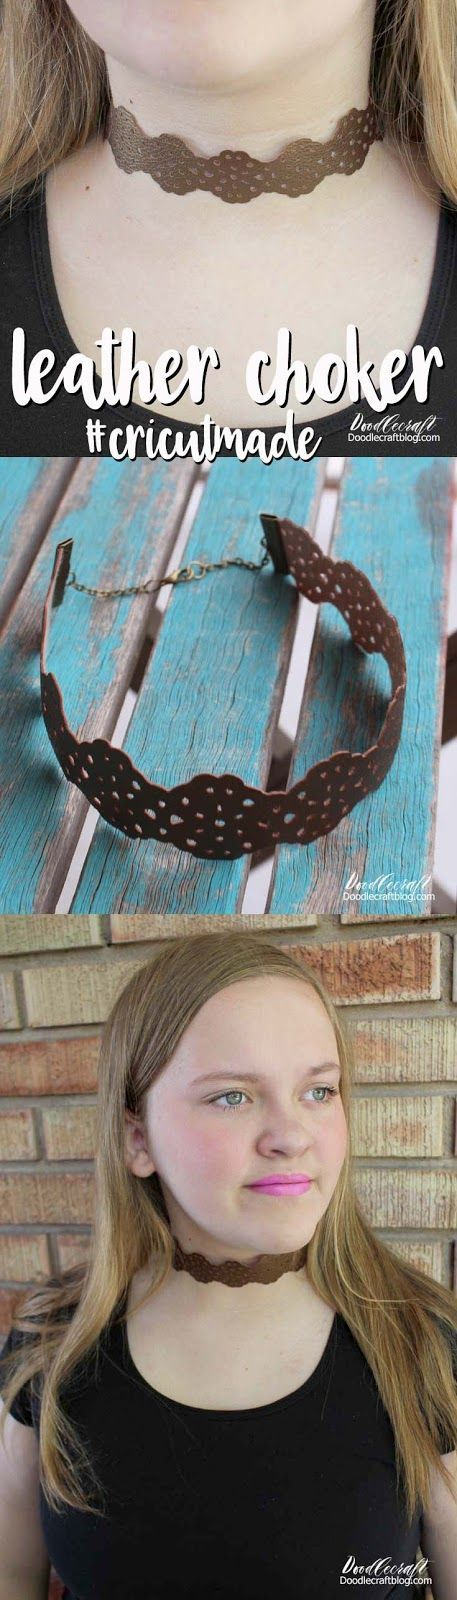 Cricut Explore Air 2: Leather Lace Choker Necklace! #cricutexploreair2projects Cricut Explore Air 2: Leather Lace Choker Necklace! #cricutexploreair2projects